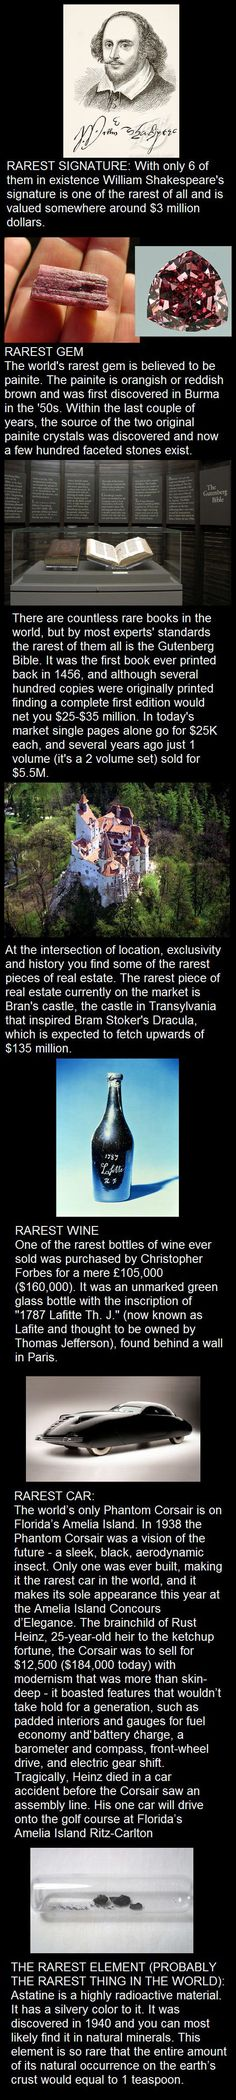 Rarest items in the world…